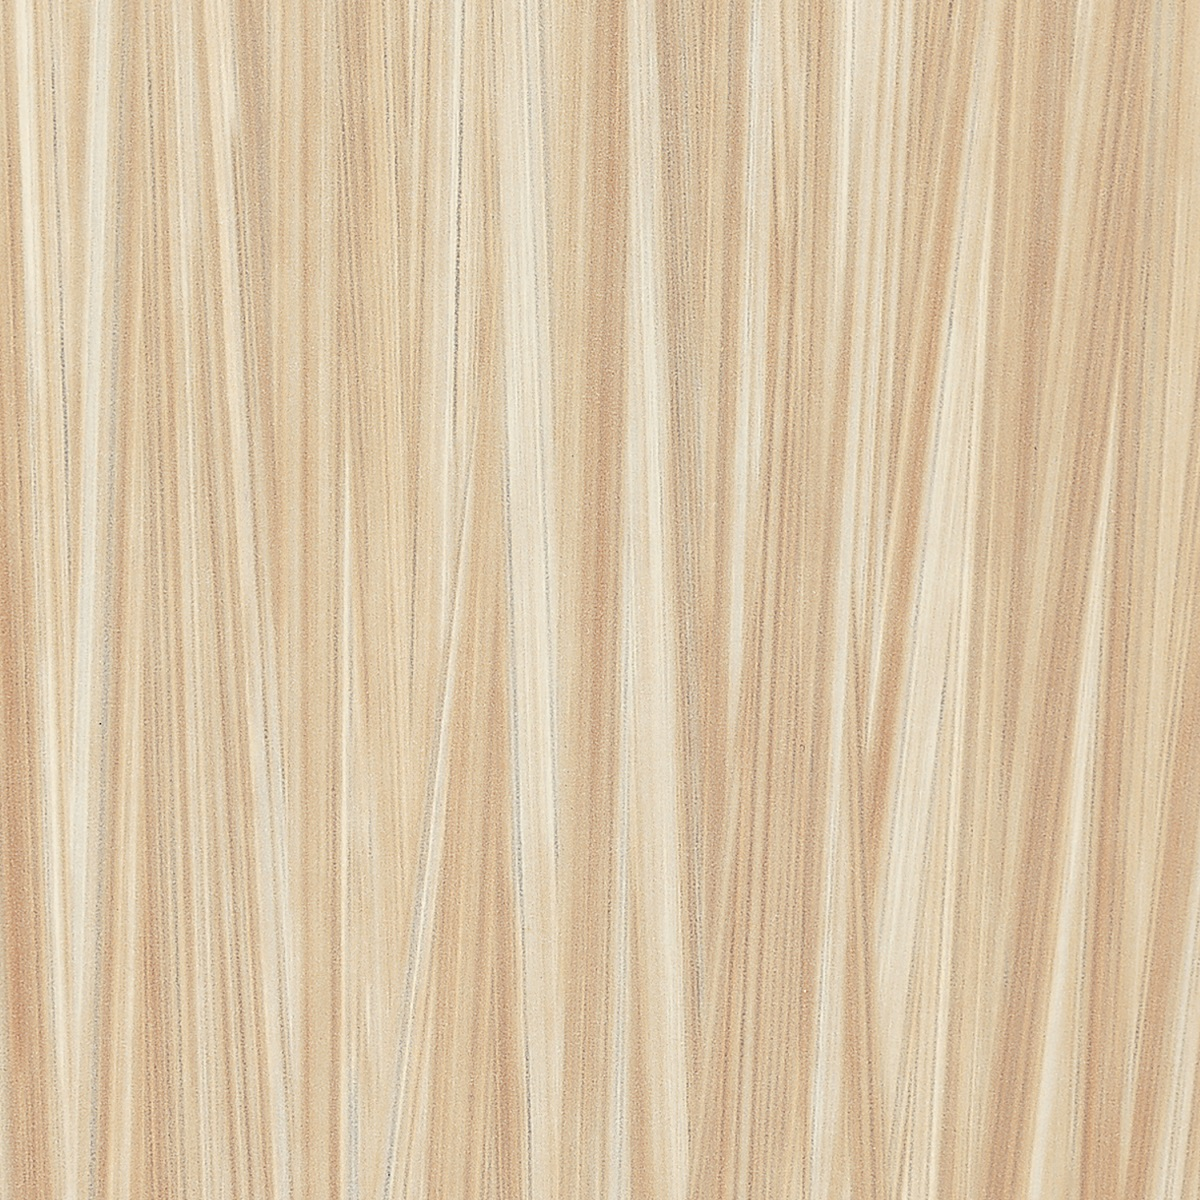 6212 Wheat Strand - Formica